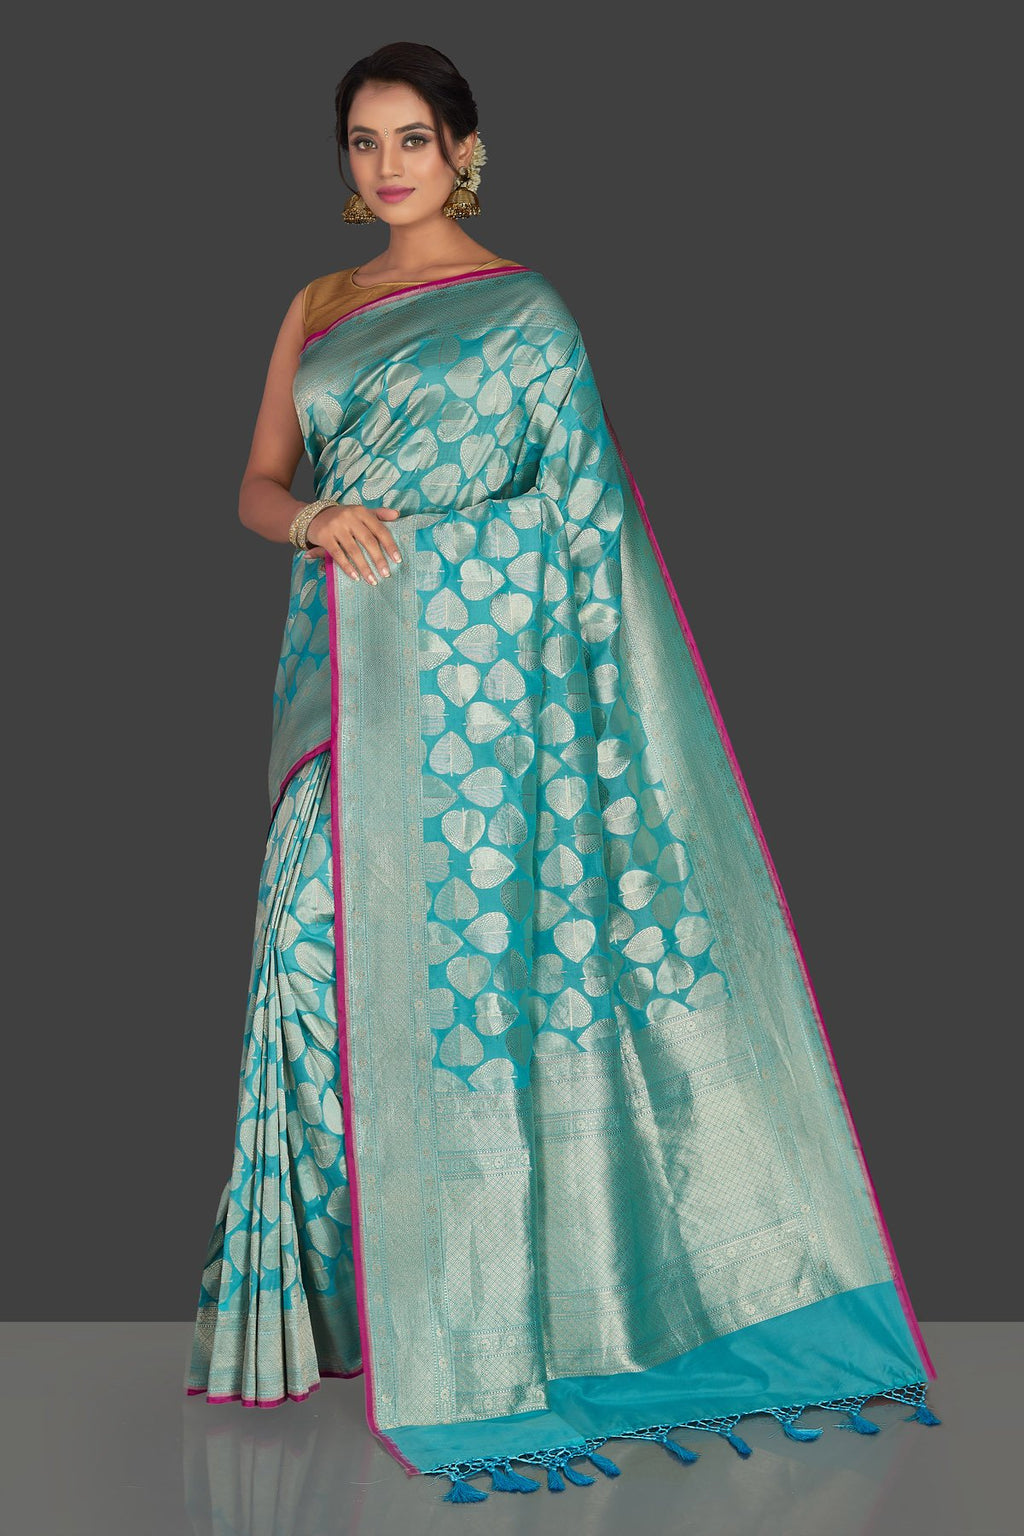 Buy turquoise blue tussar georgette saree online in USA with silver zari work. Keep it elegant with georgette sarees, Banarasi silk sarees, handwoven sarees from Pure Elegance Indian fashion boutique in USA. We bring a especially curated collection of ethnic sarees for Indian women in USA under one roof!-full view